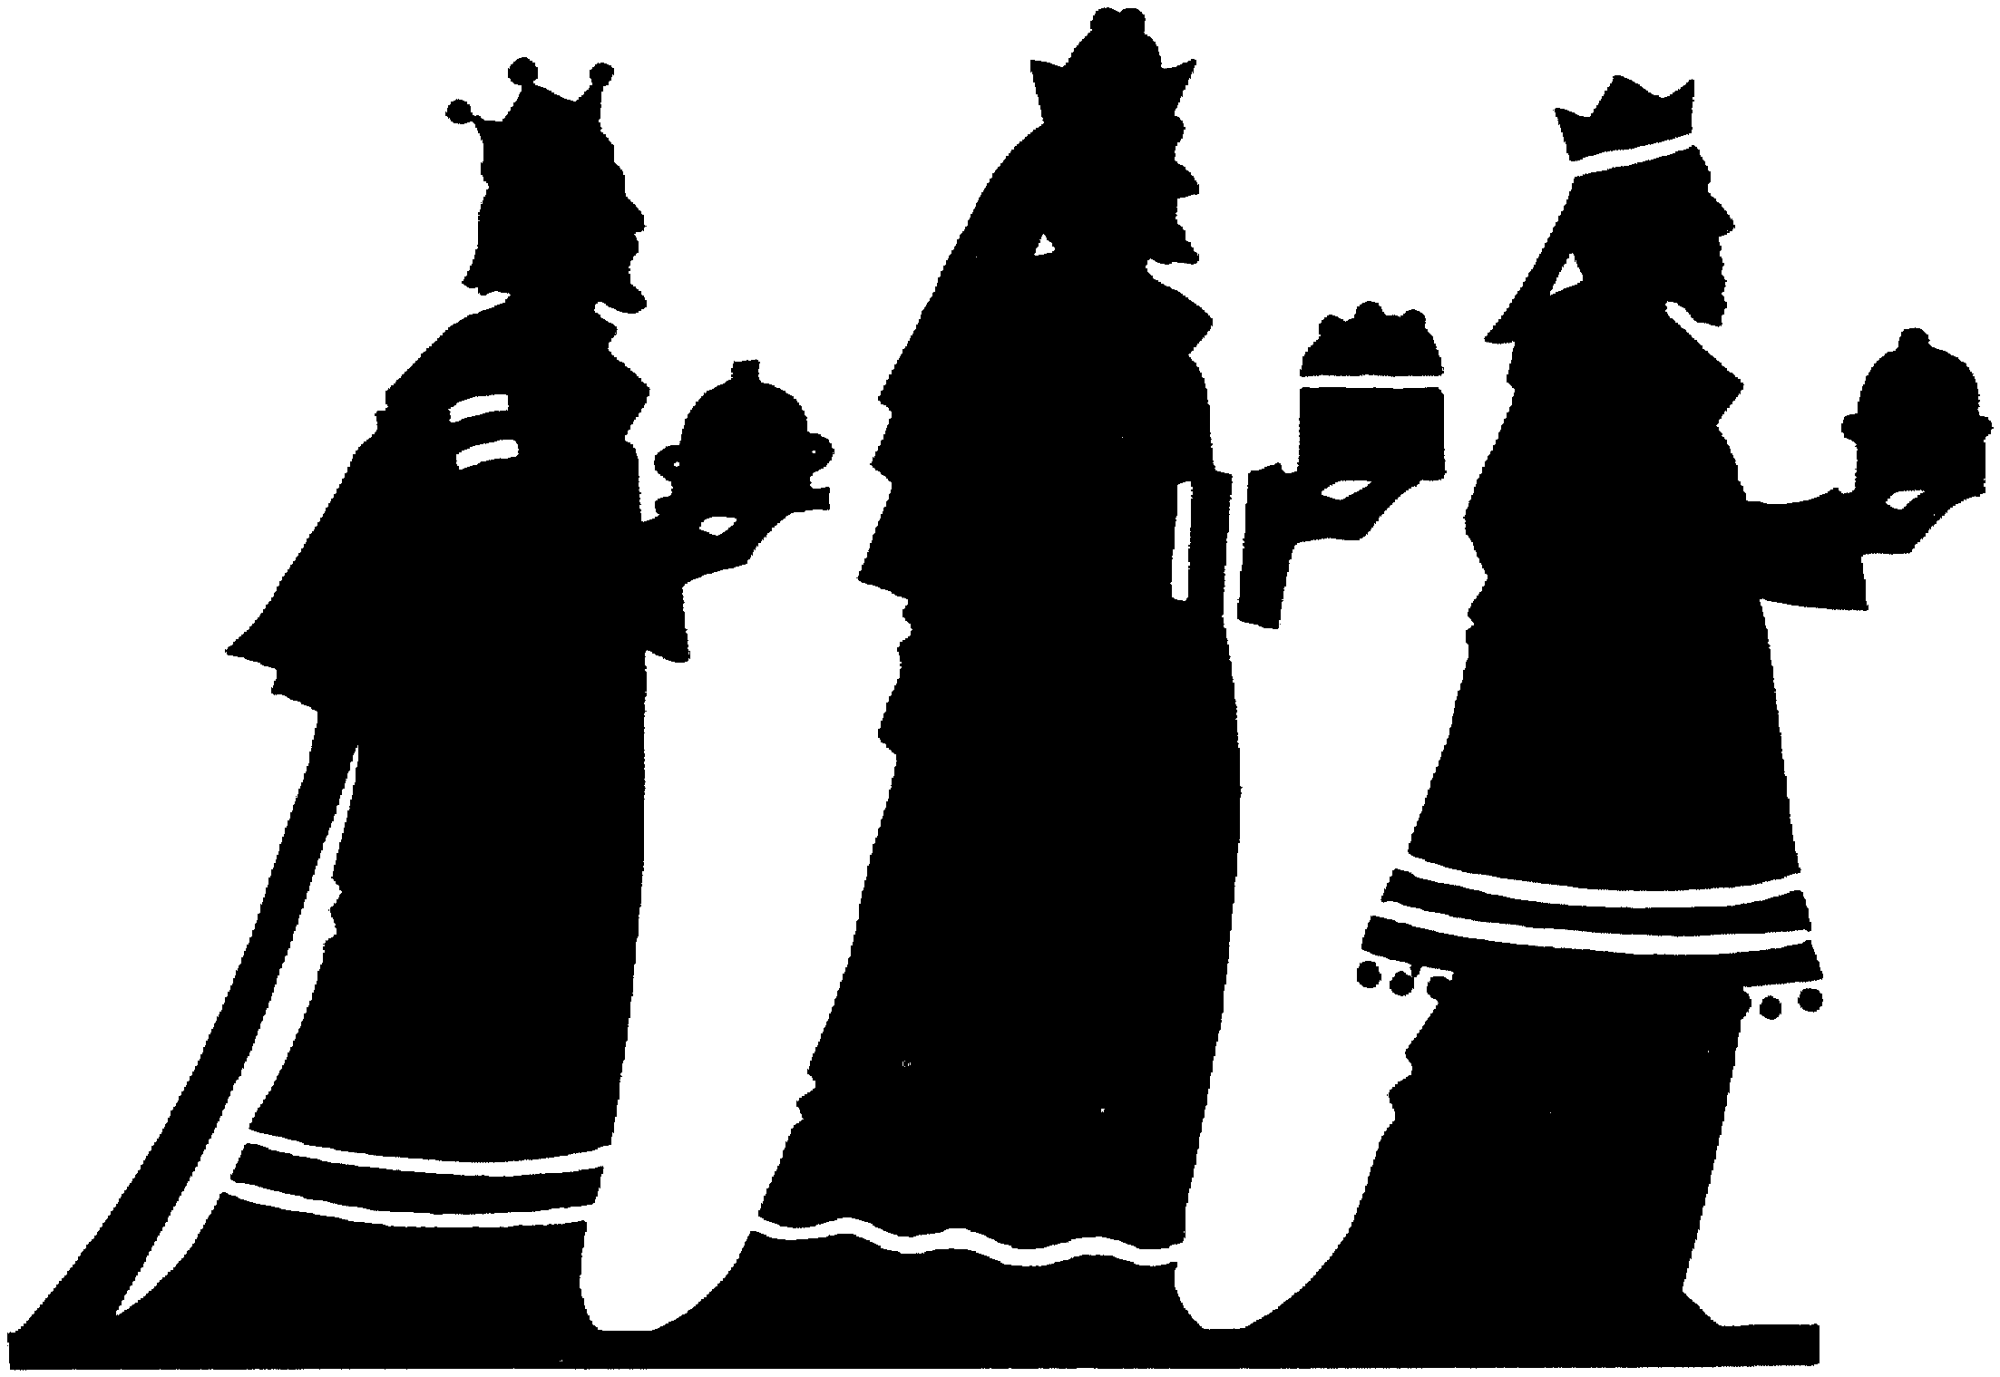 hight resolution of 3 wise men pictures jesus